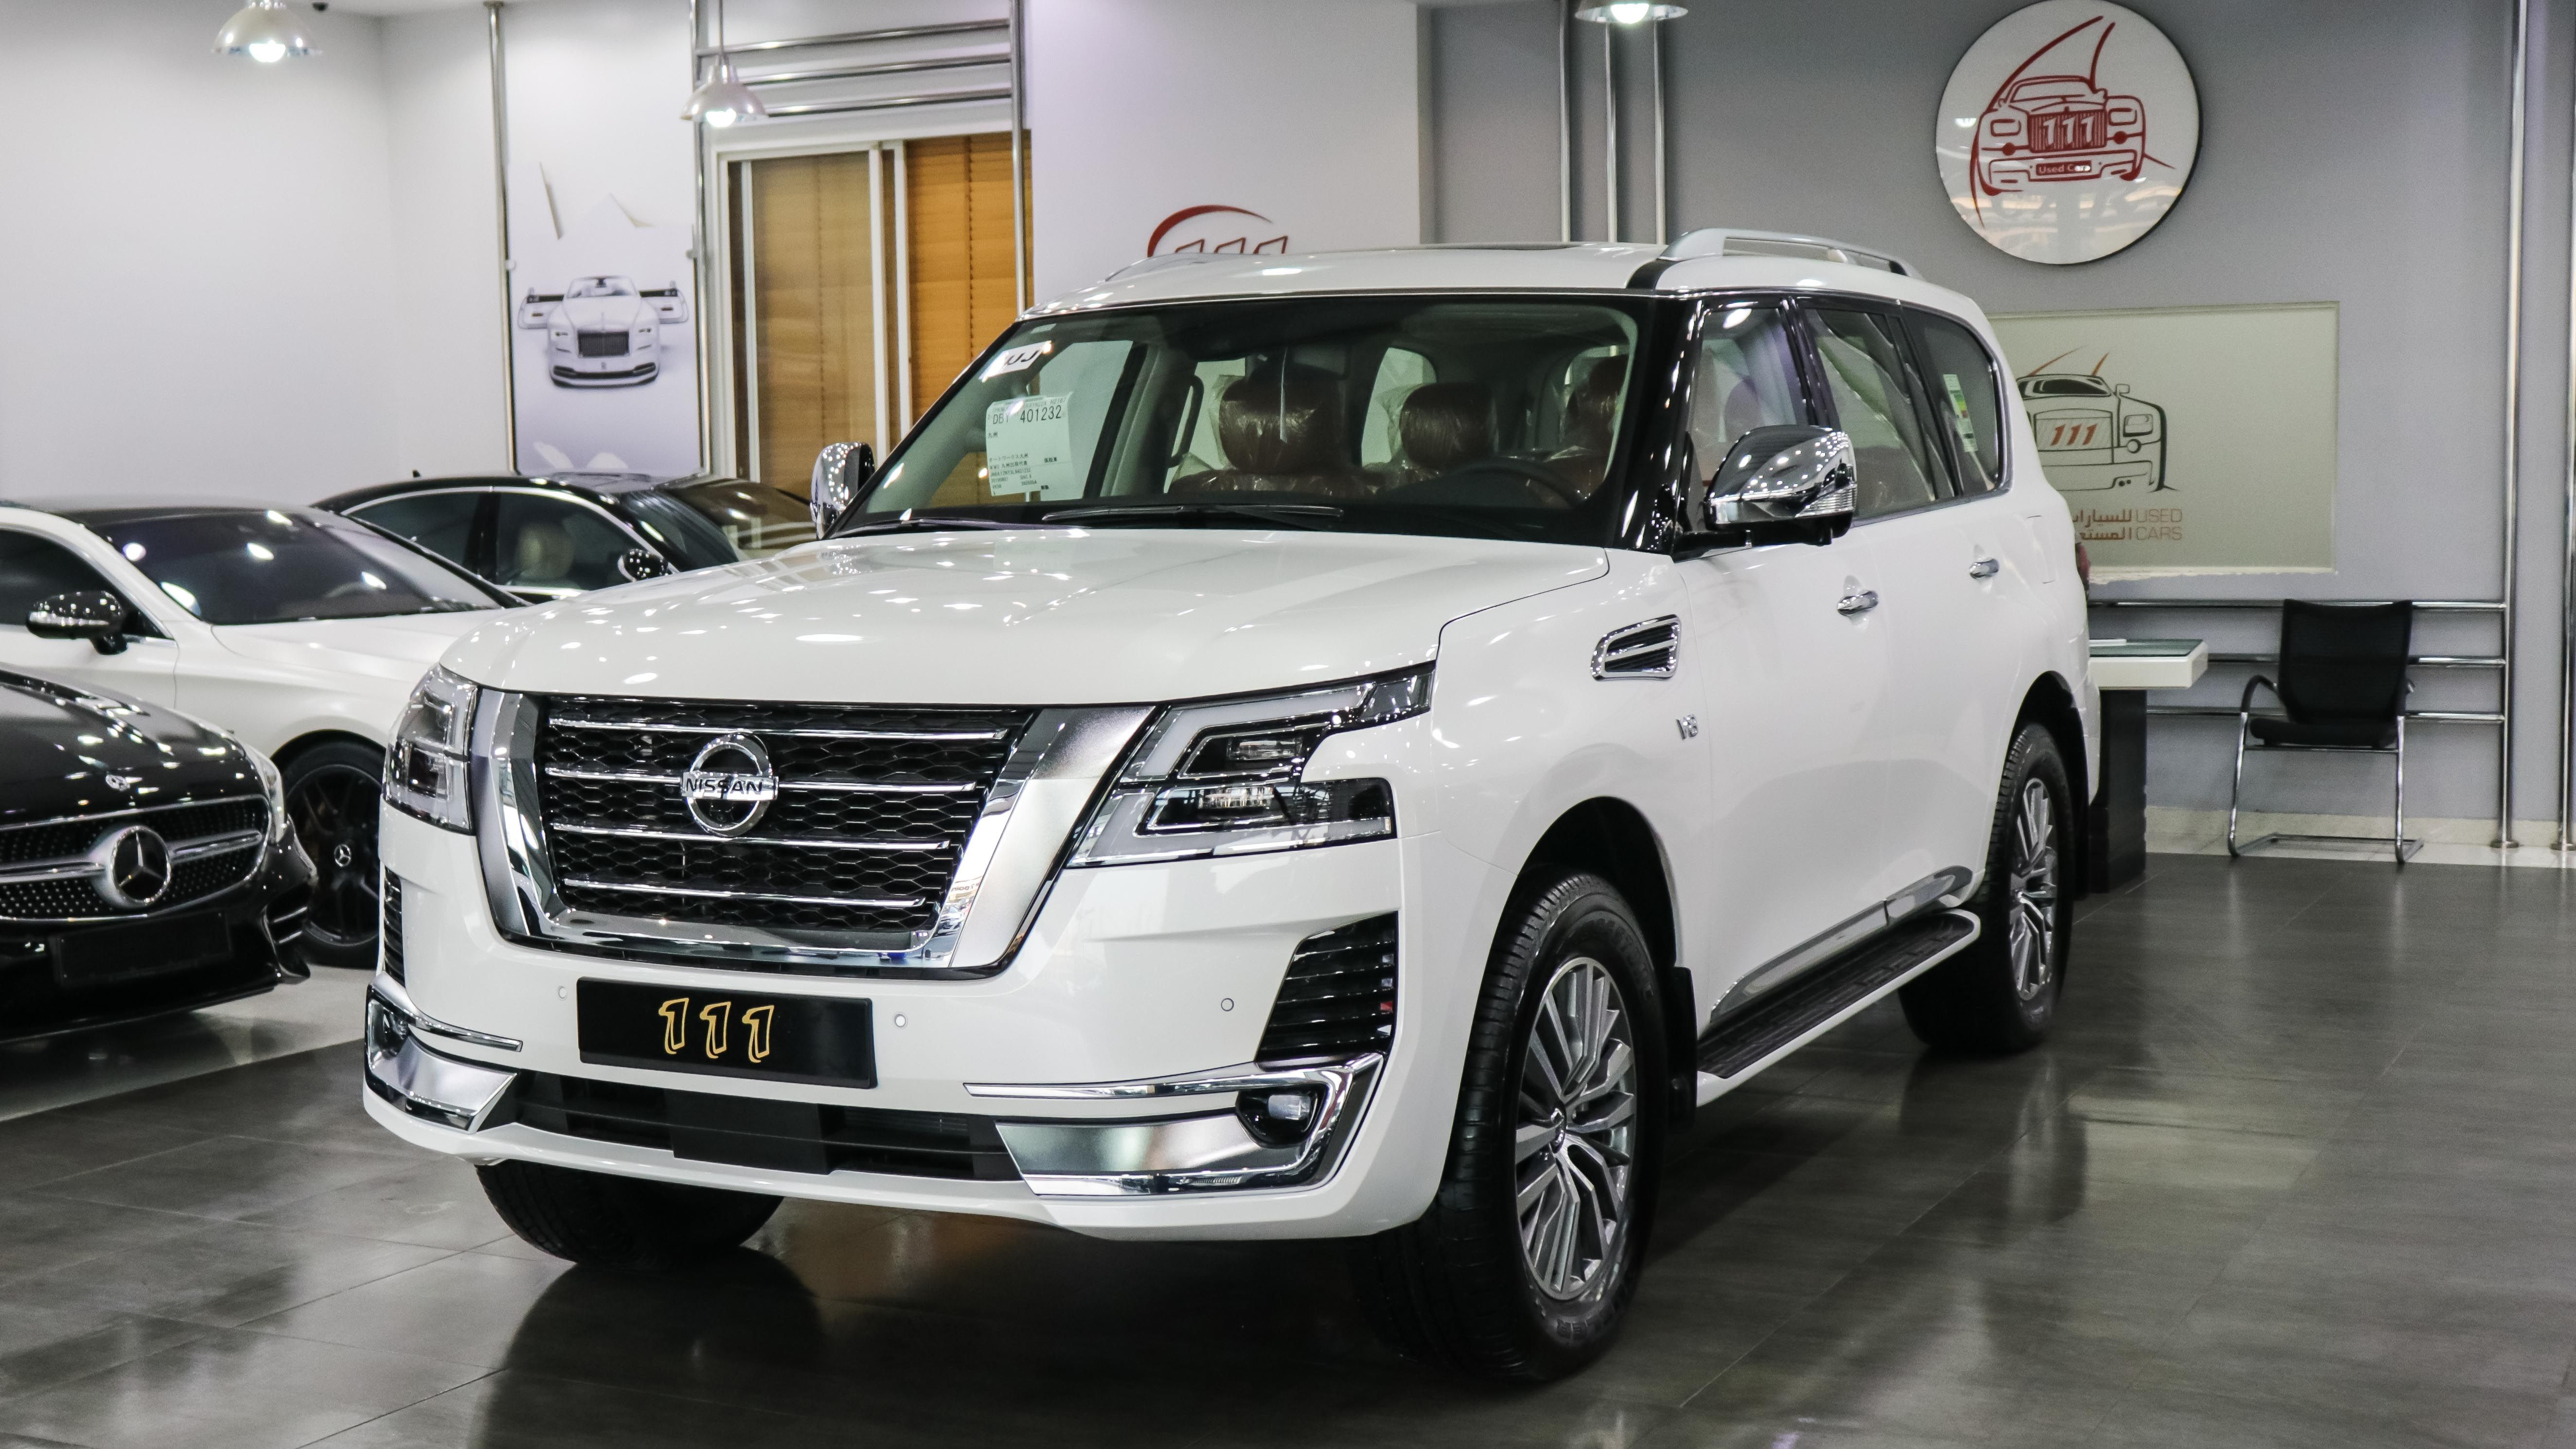 Model Nissan Patrol LE Platinum / GCC Specifications / 5